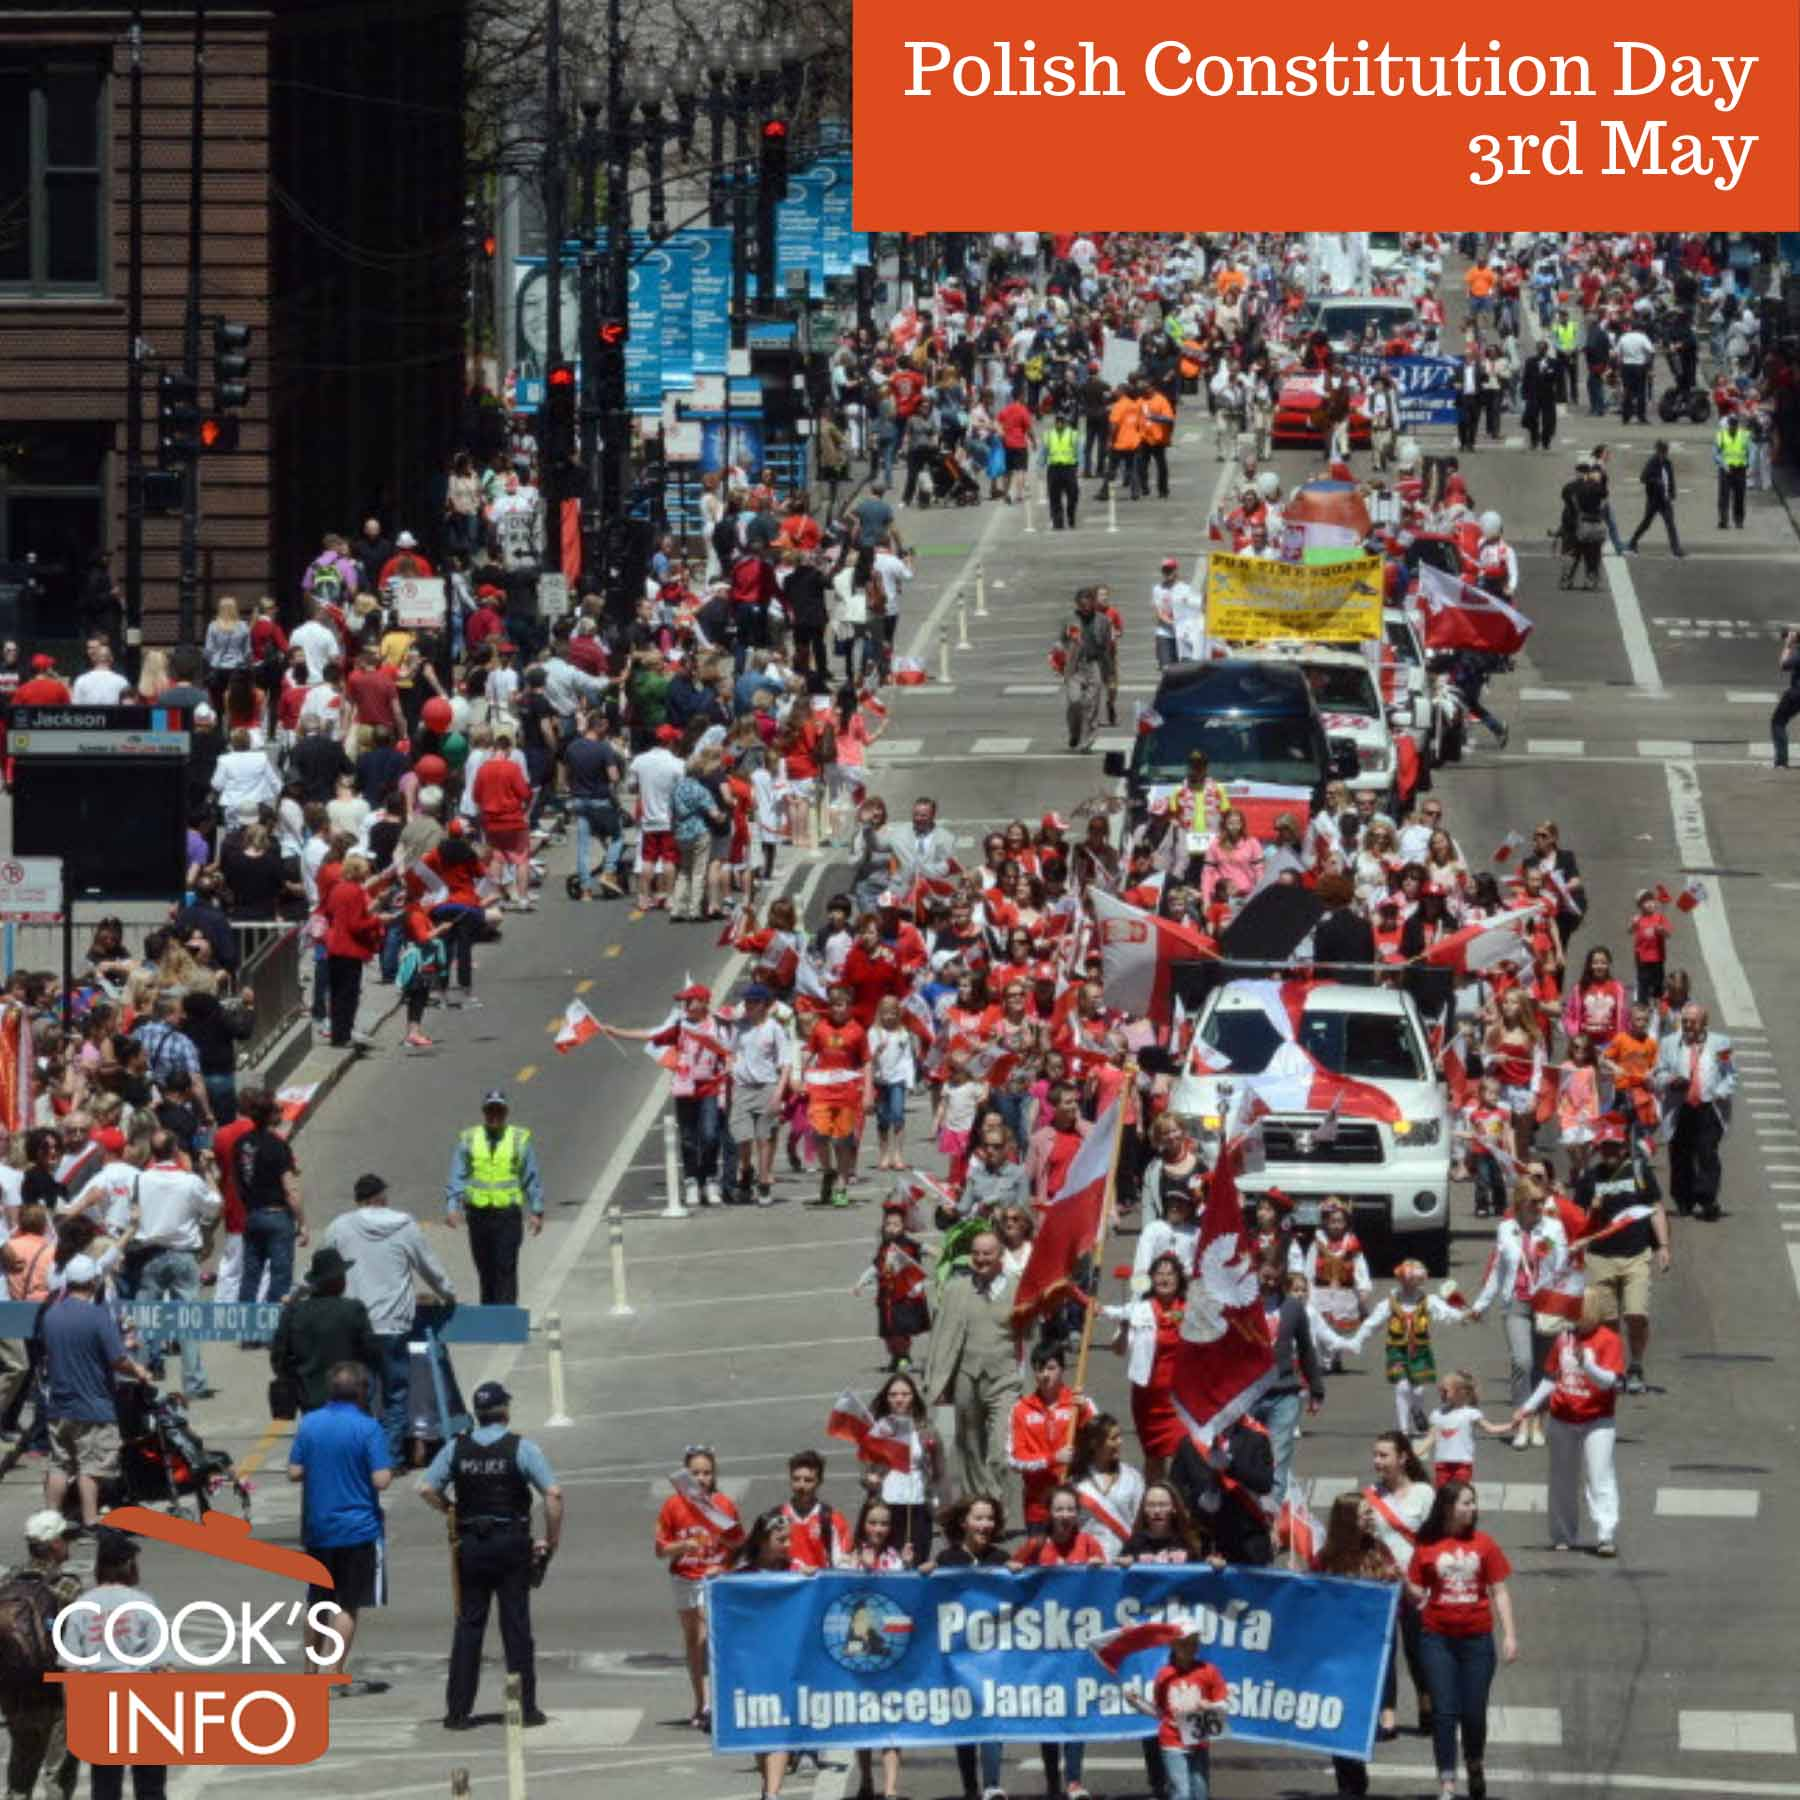 Polish Constitution Day Parade in Chicago 2015